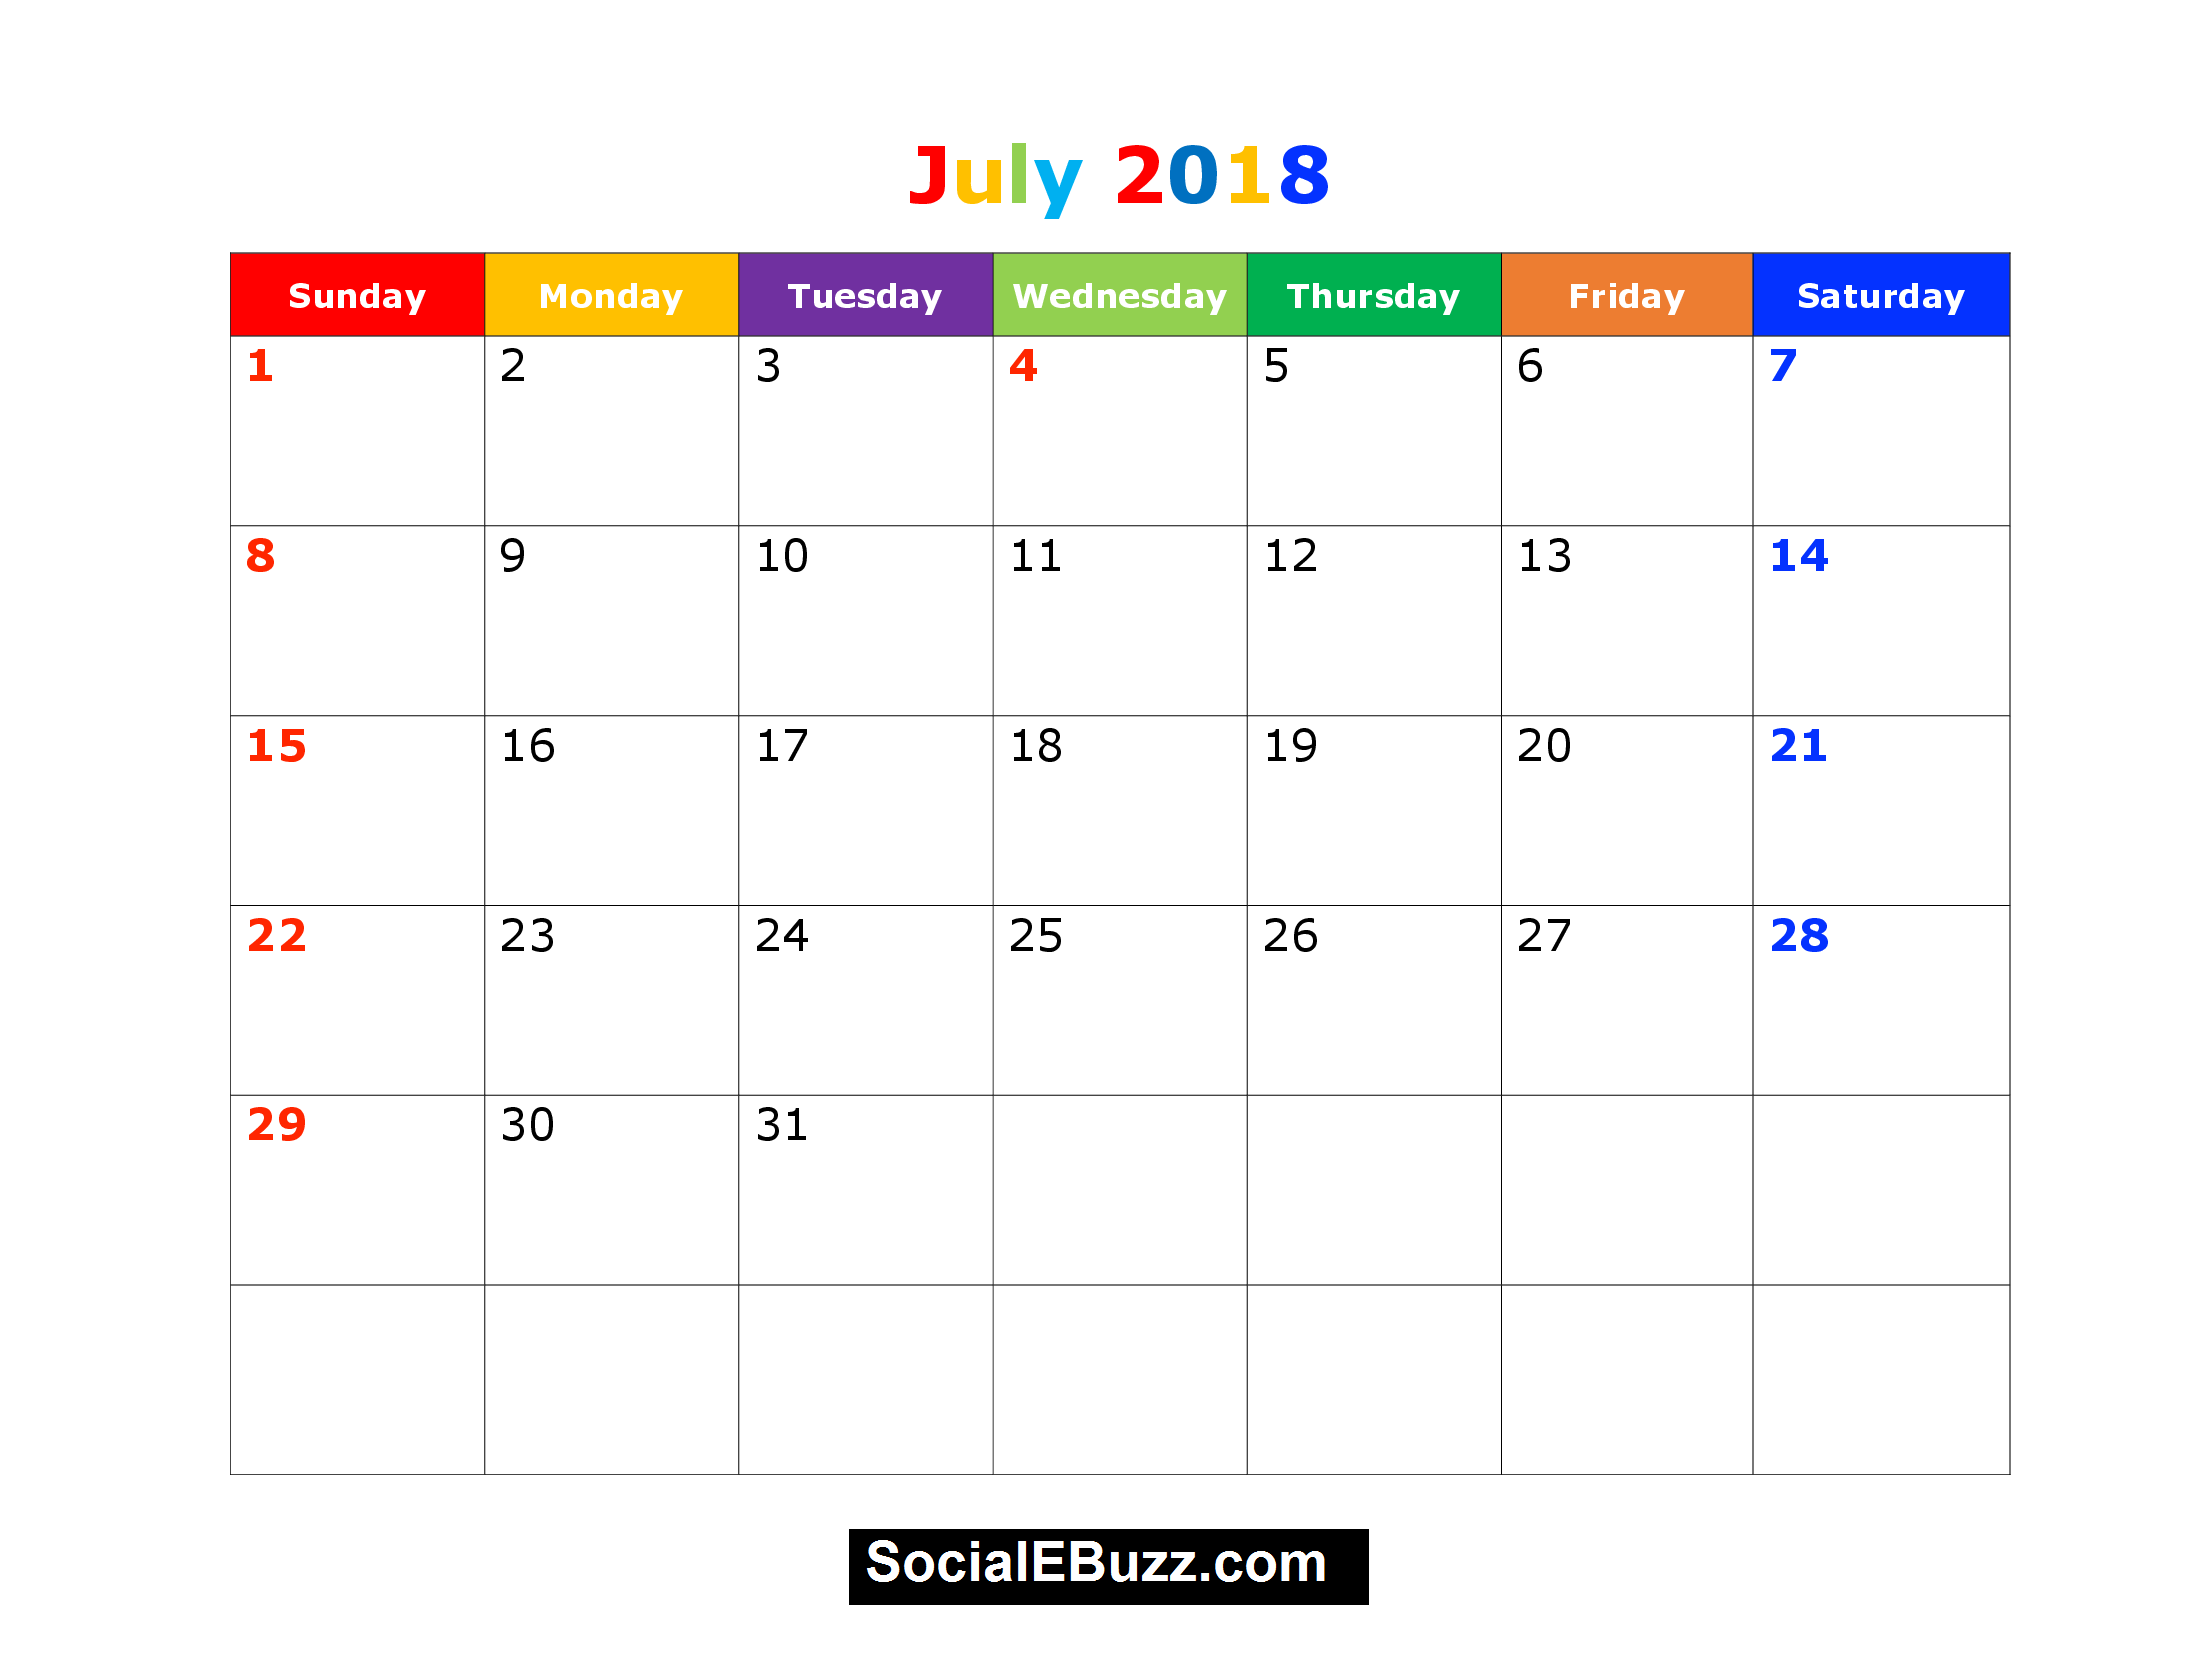 July 2018 Calendar Printable Template With Holidays Pdf Usa Uk July Calendar 2018 2018 July Calendar July 2018 Printable Calendar Word Excel Canada Http